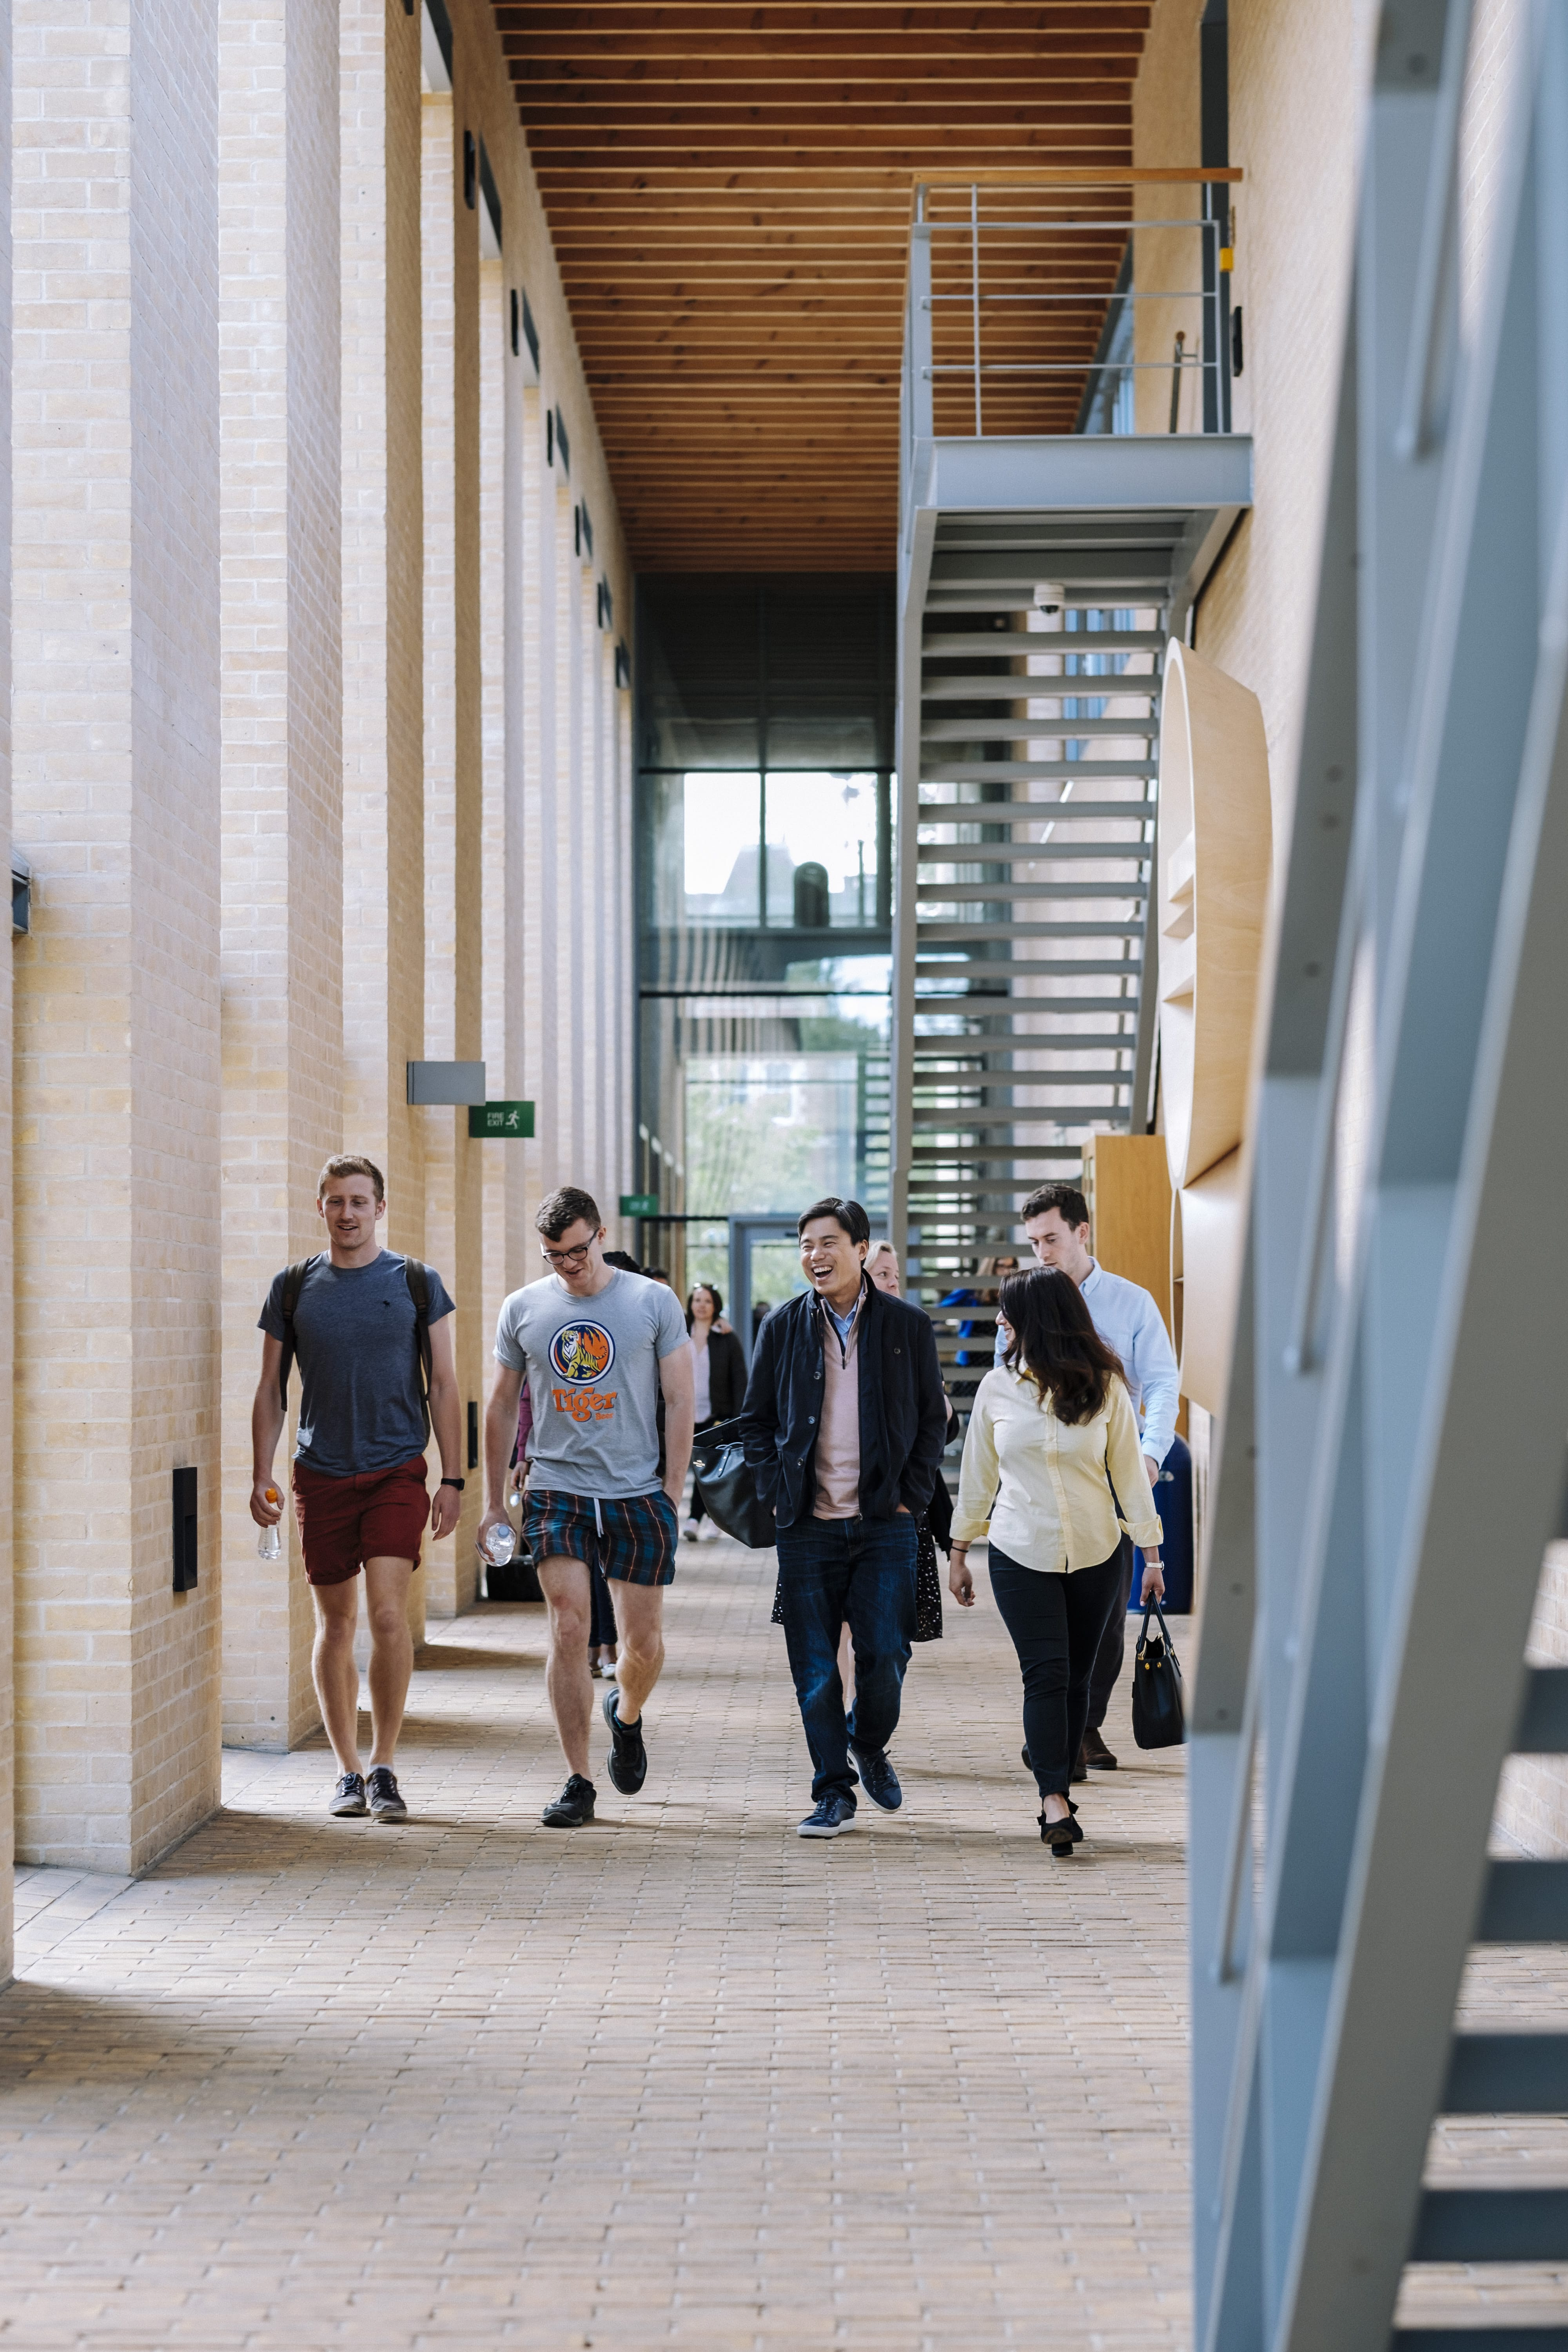 Students walking in Said Business School